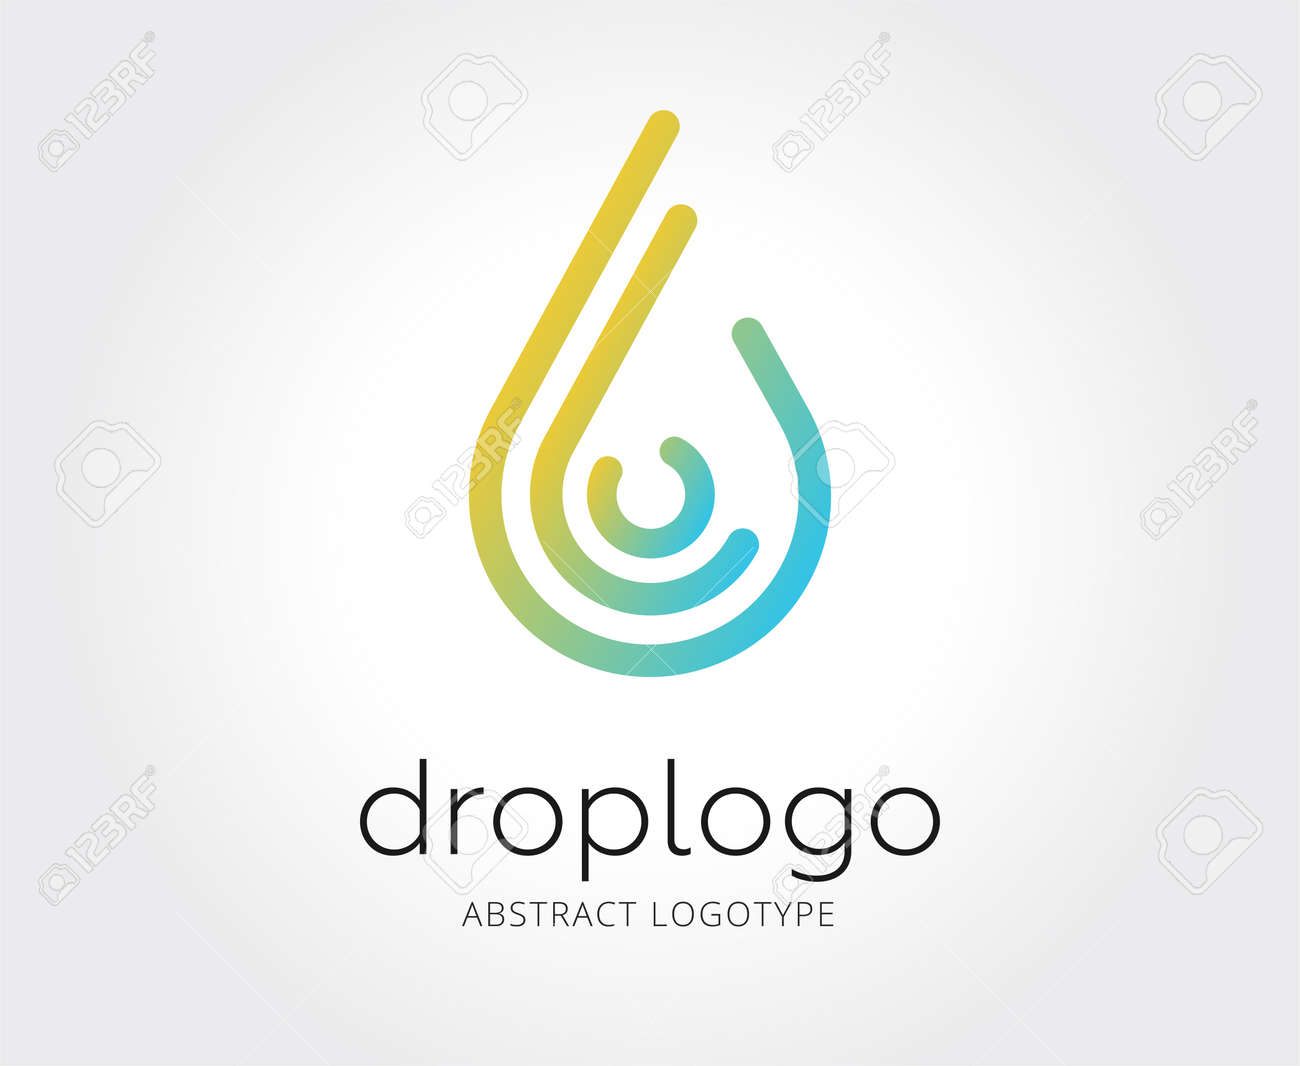 Abstract Water Drop Vector Logo Template For Branding And Design